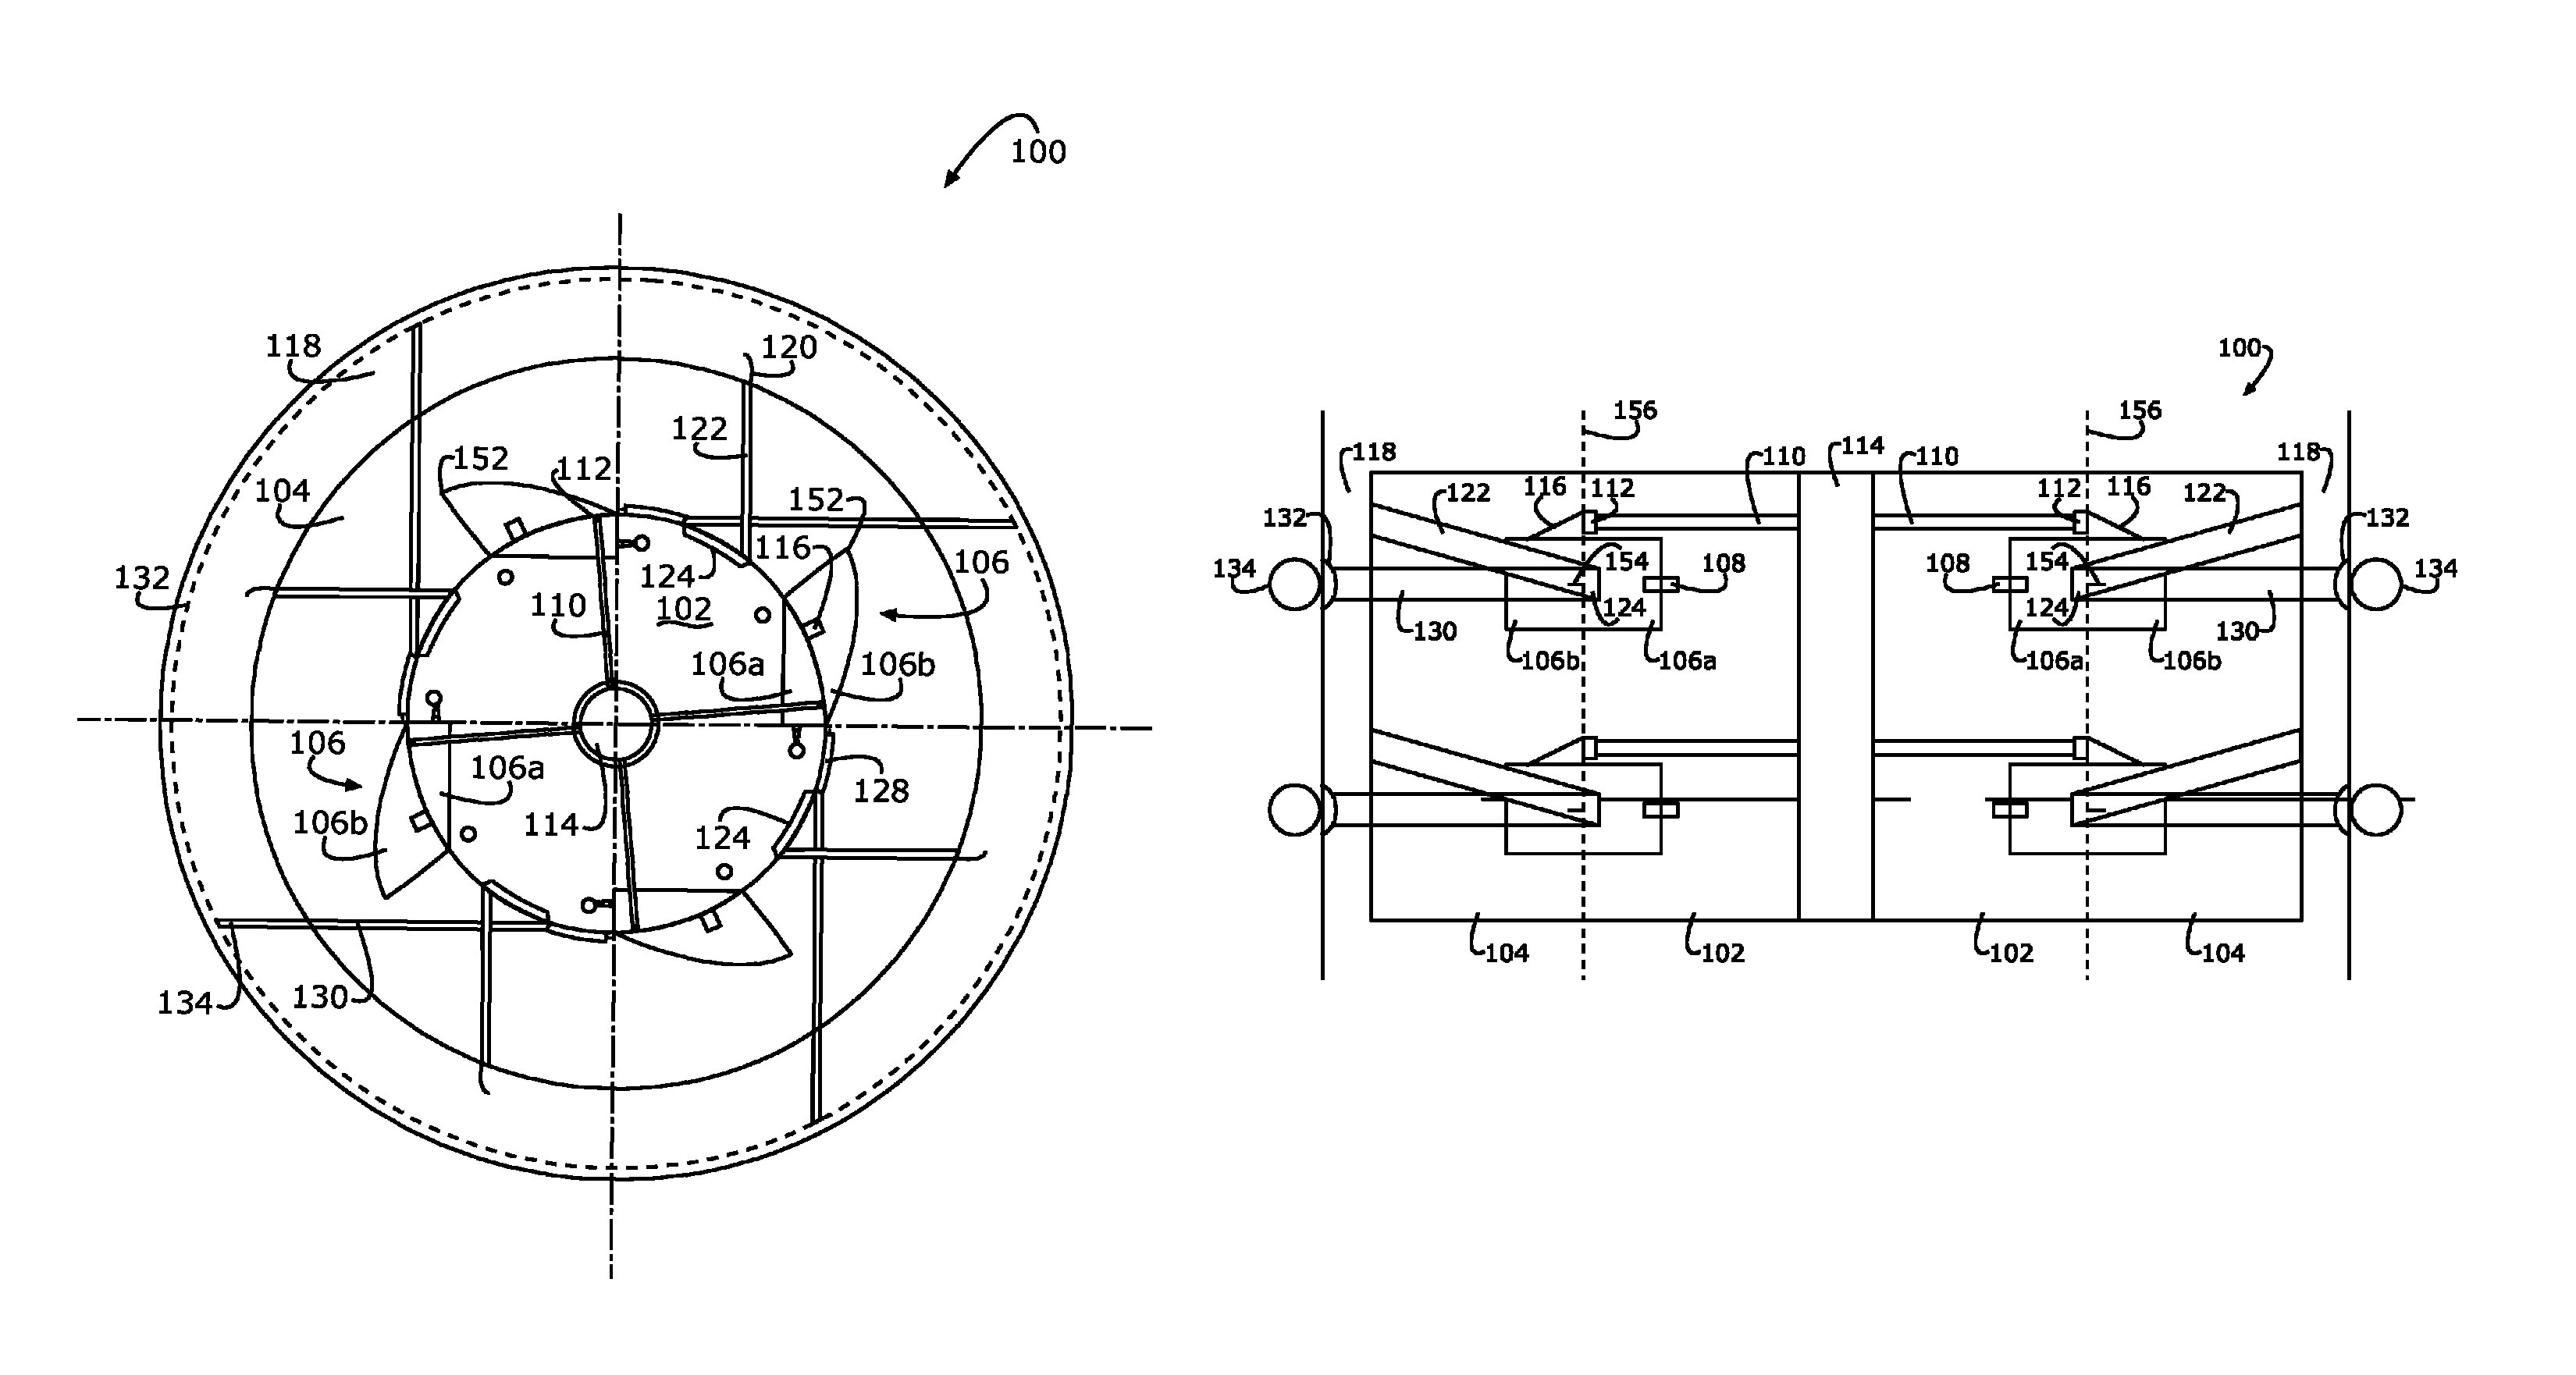 wankel engine diagram patent us pistonless rotary internal